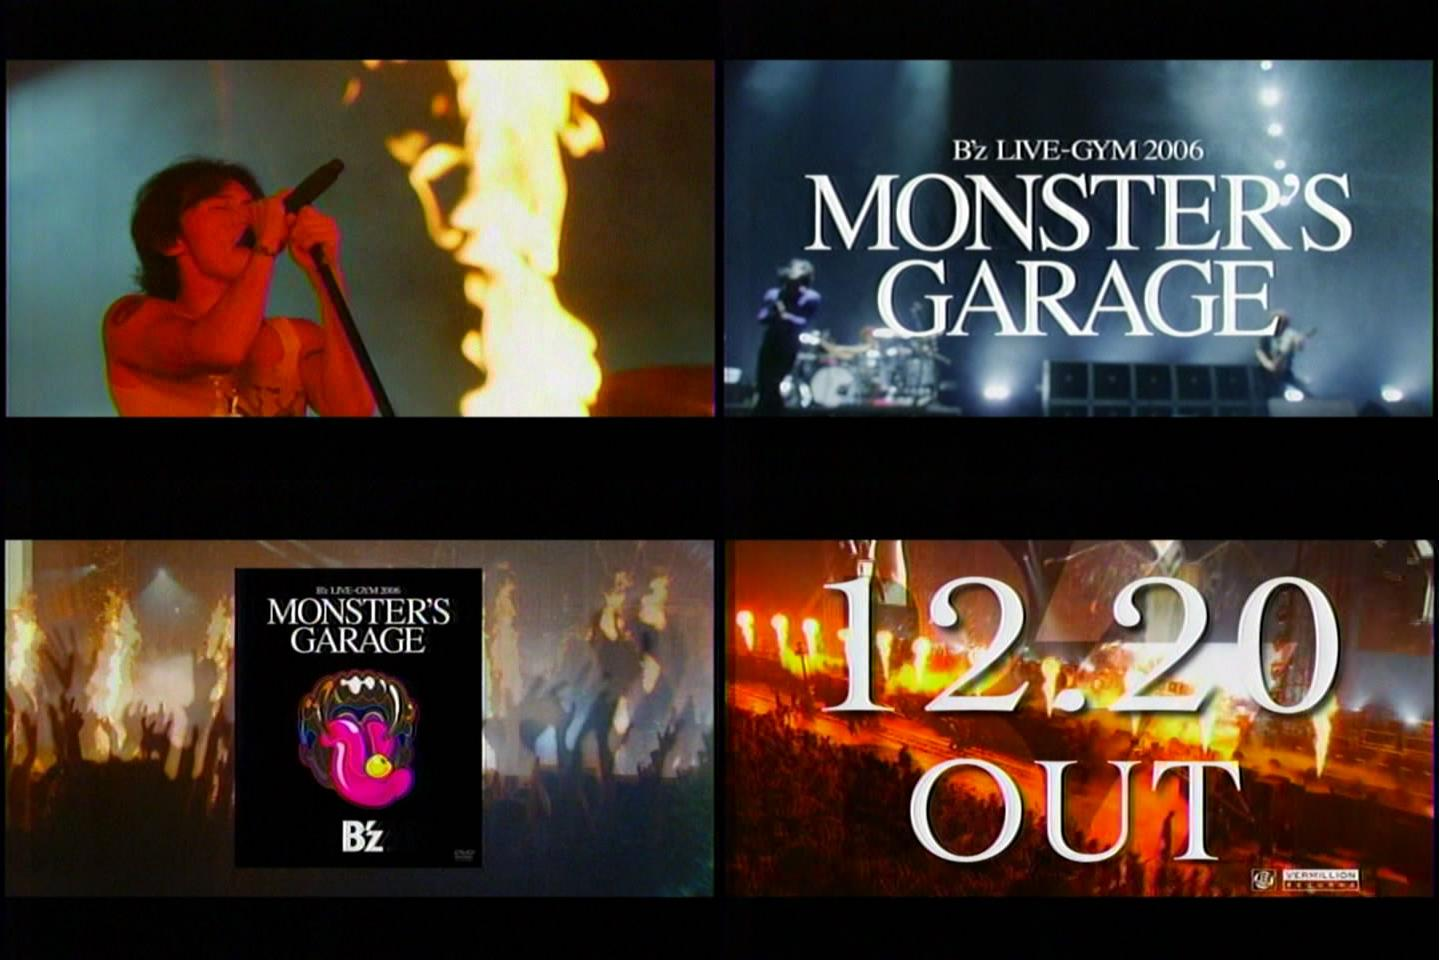 DVD「MONSTER'S GARAGE」CMまとめ